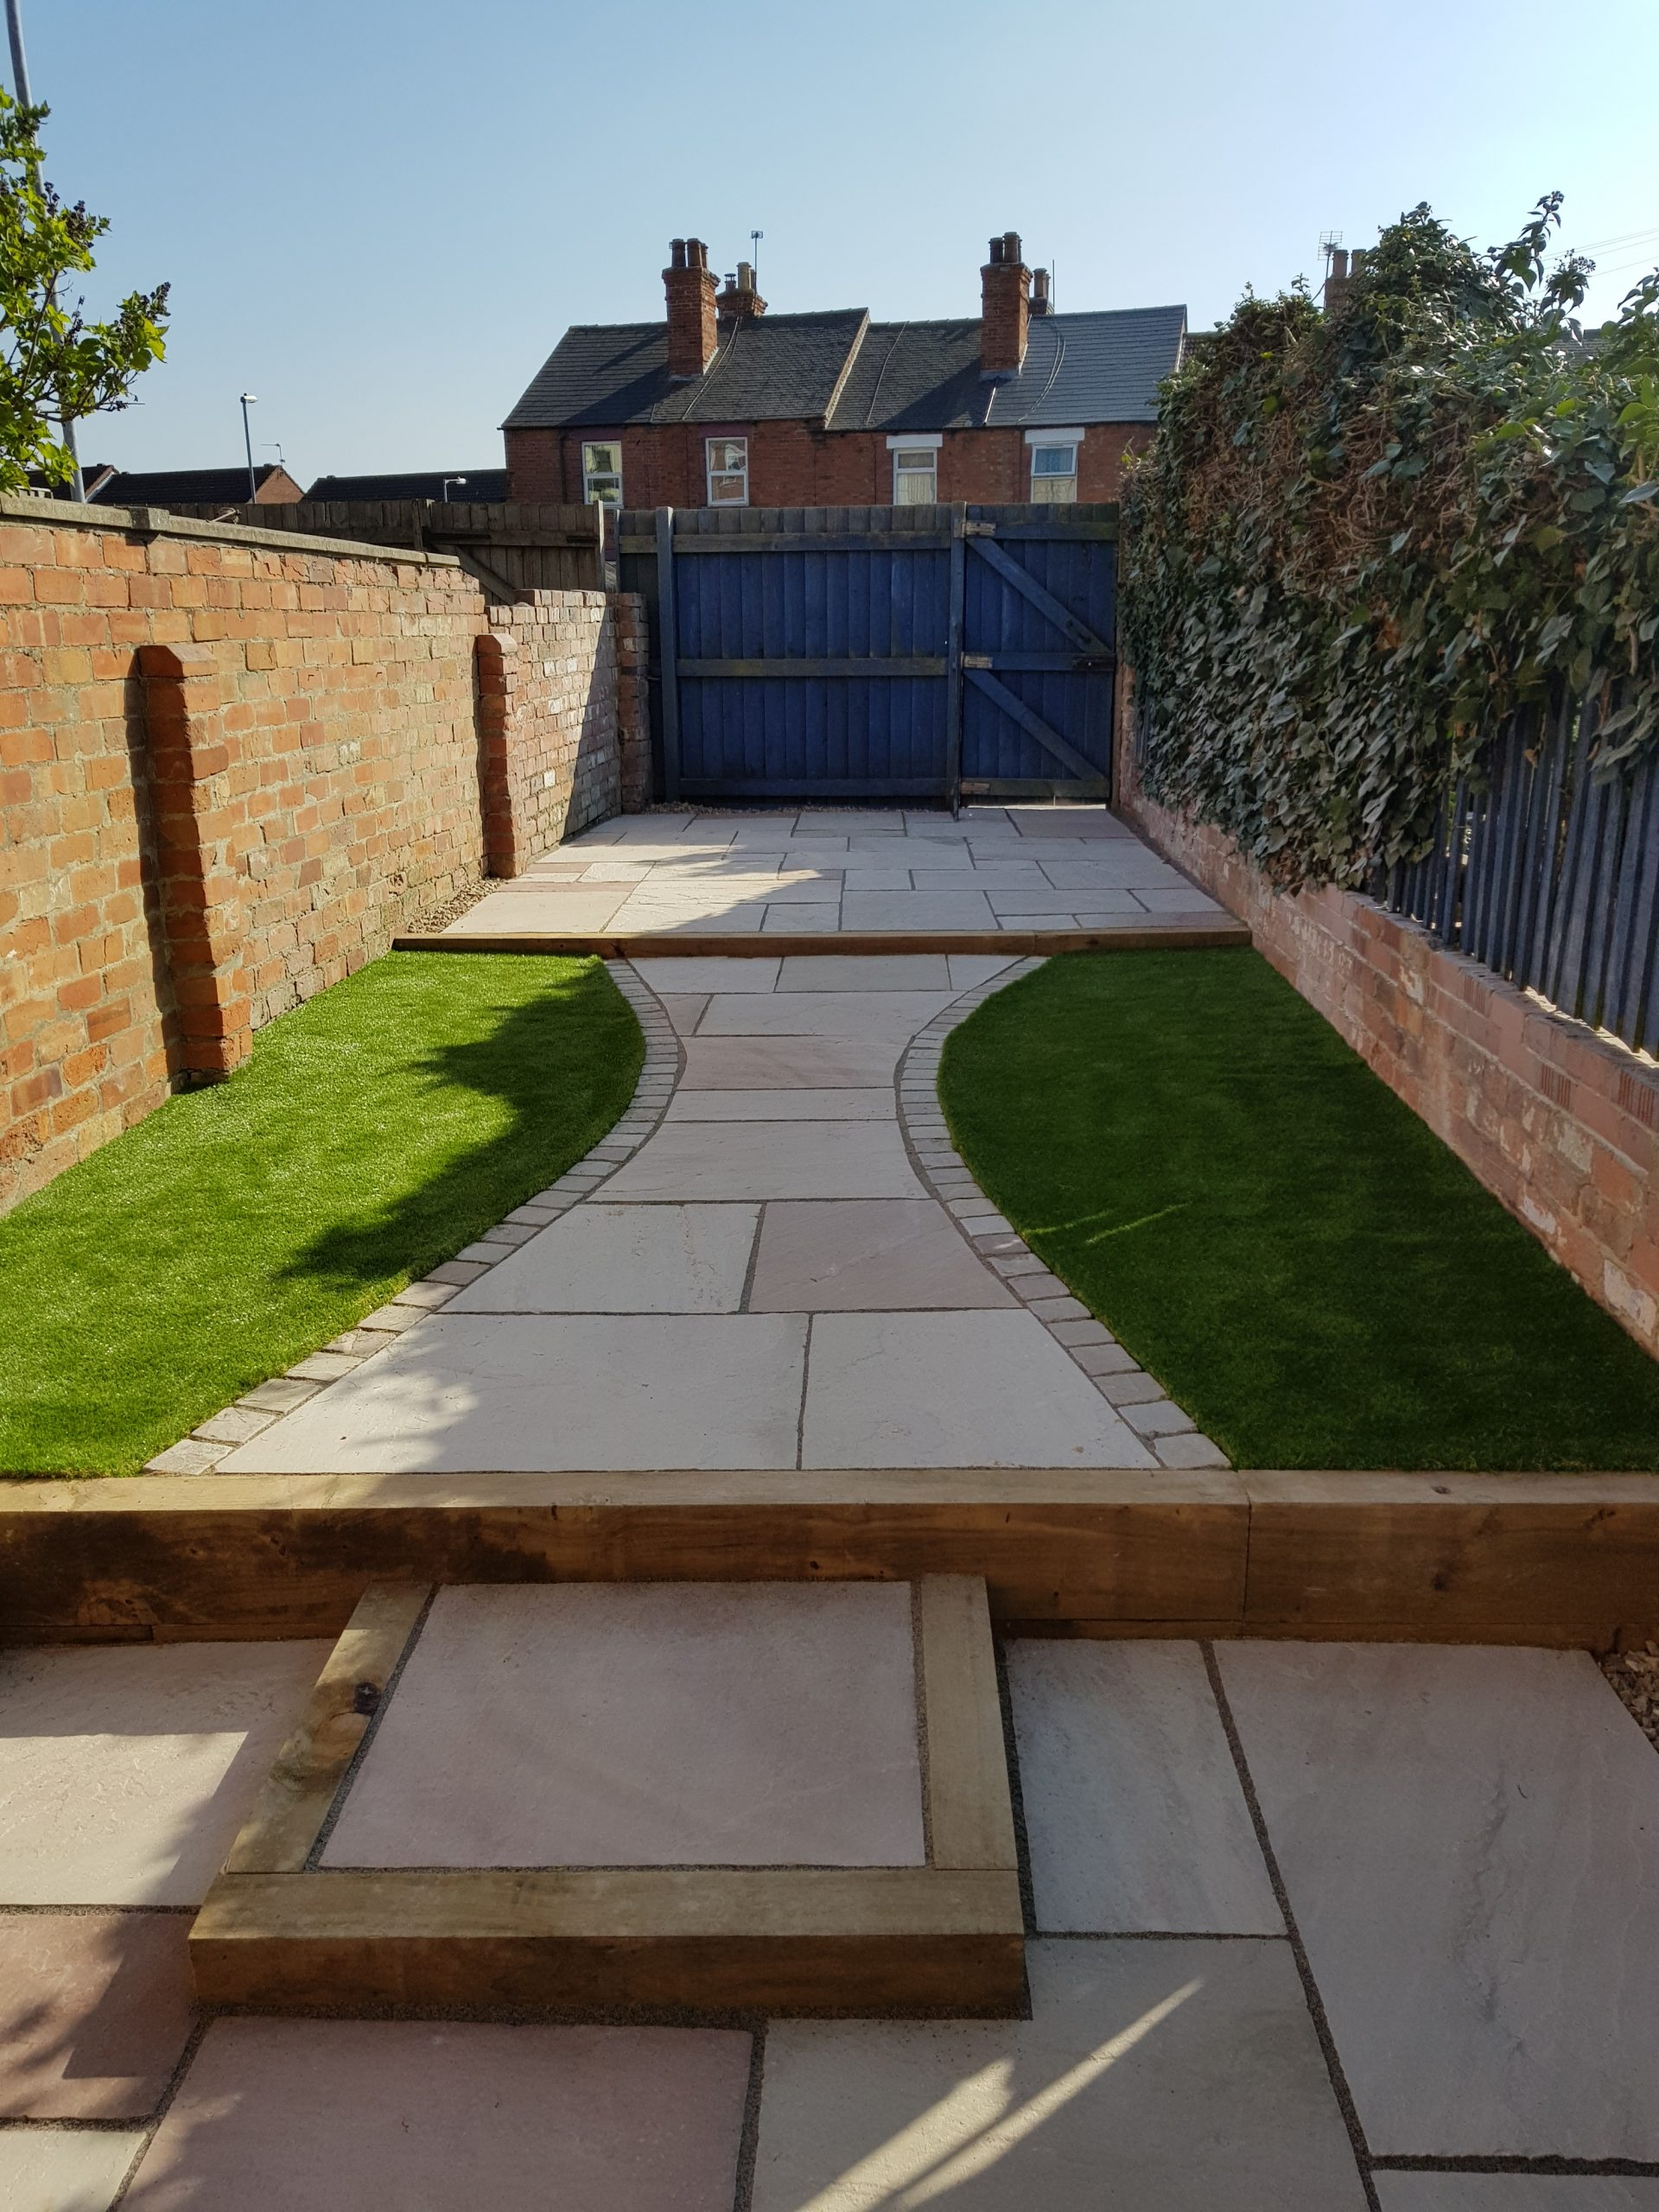 Whole Garden makeover paving slabs and curved lawn area